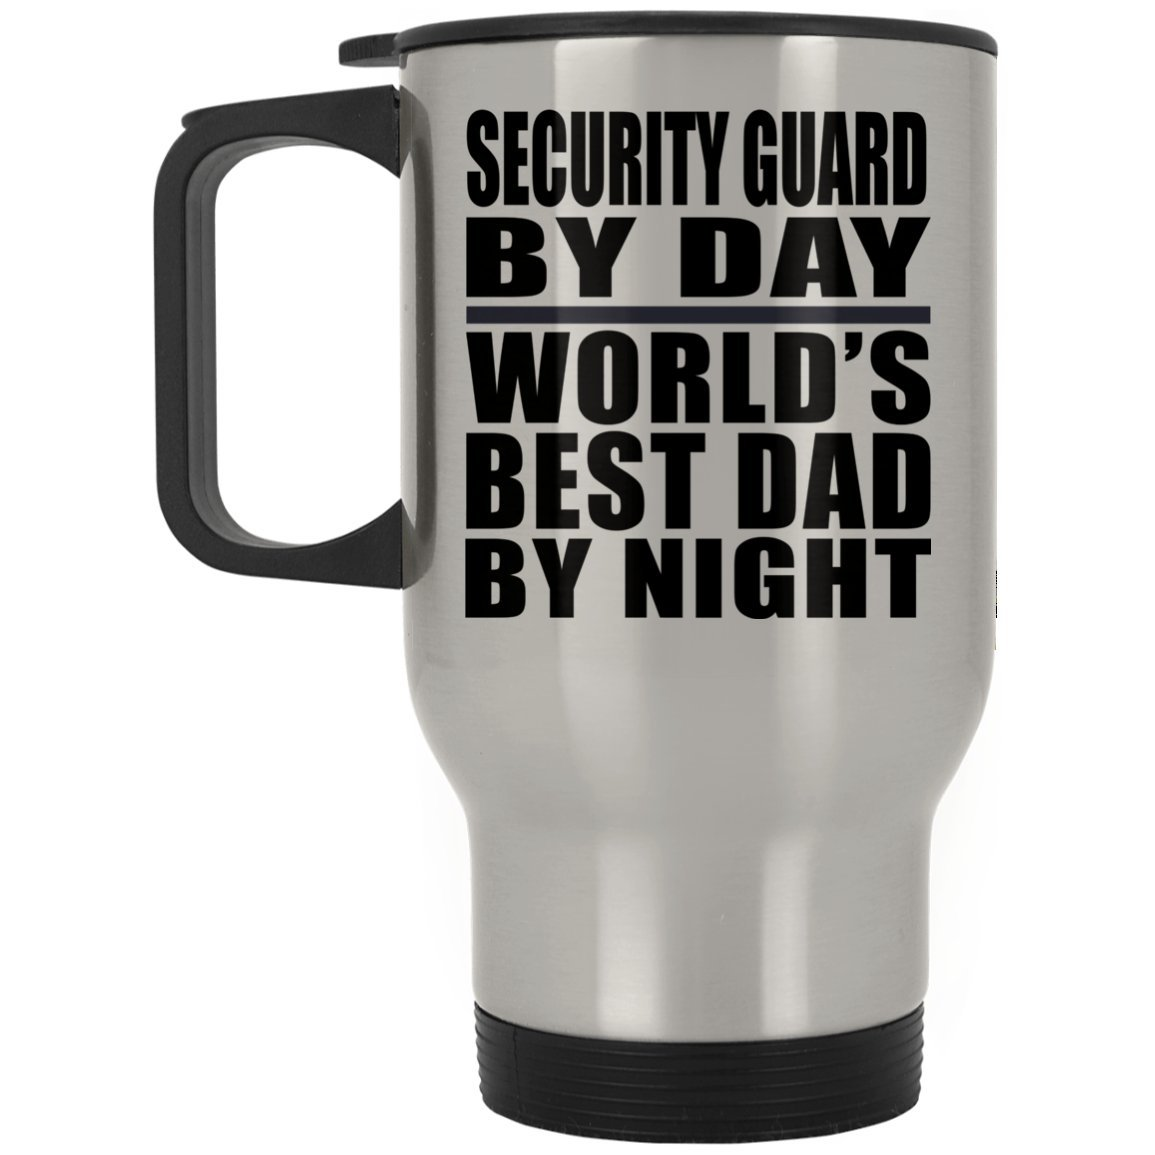 Dad Travel Mug, Security Guard By Day World's Best Dad By Night - Travel Mug, Stainless Steel Tumbler, Best Gift for Father, Daddy, Him, Parent from Daughter, Son, Kid, Wife by Designsify